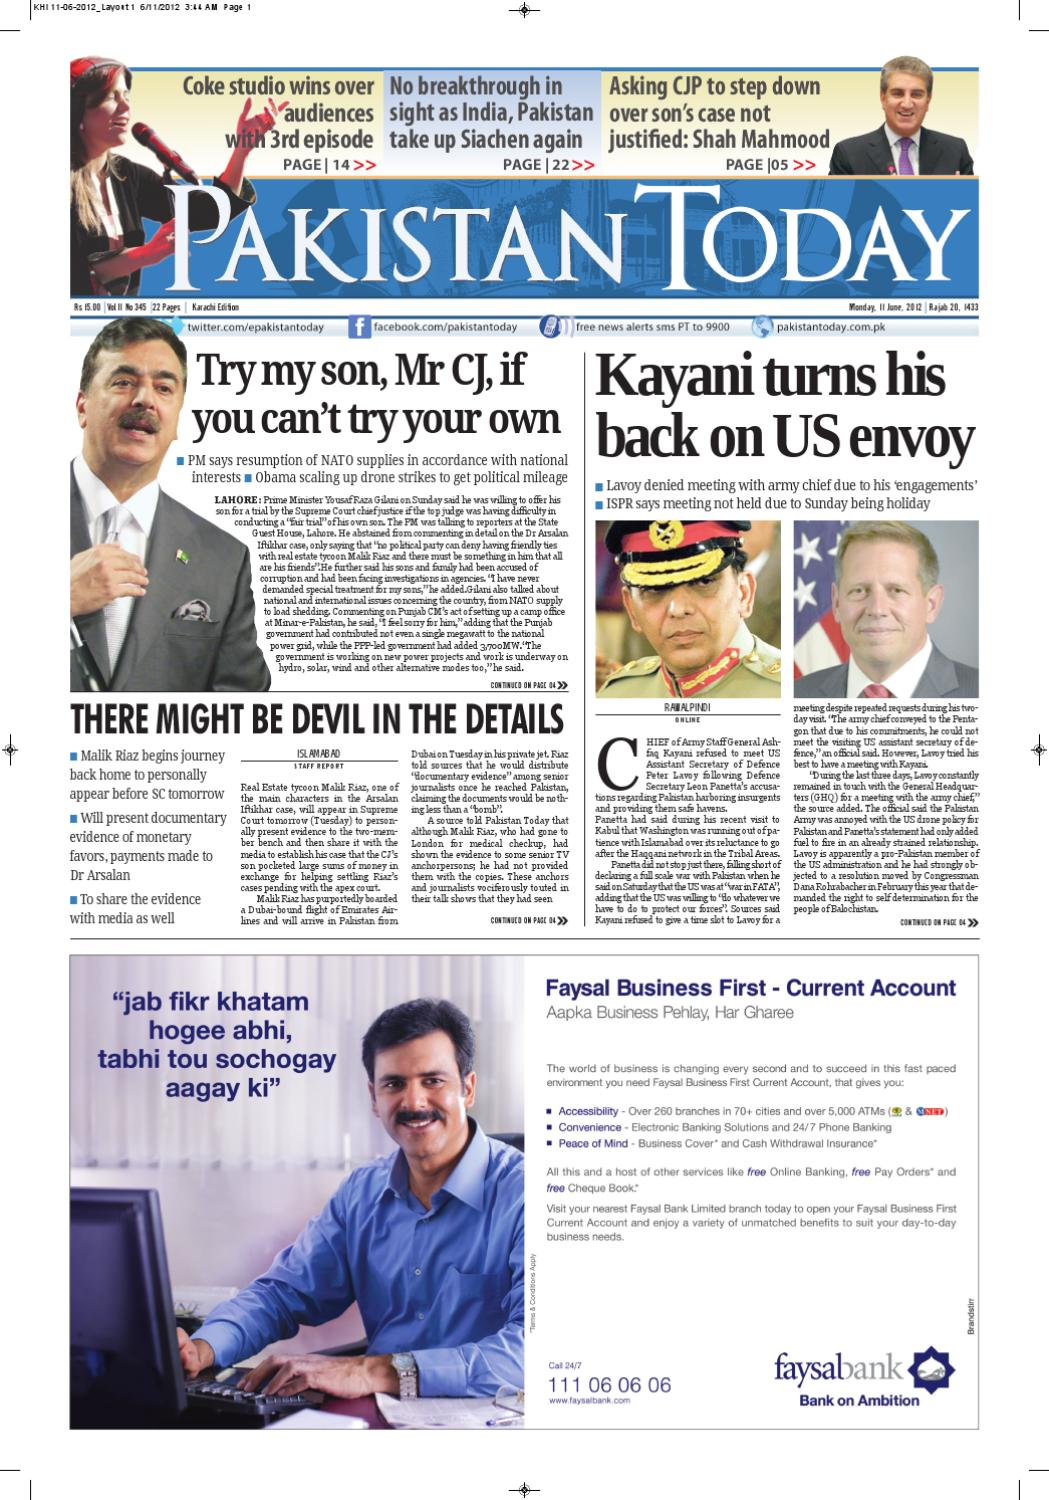 e-paper pakistantoday 11th june, 2012 by Pakistan Today - issuu